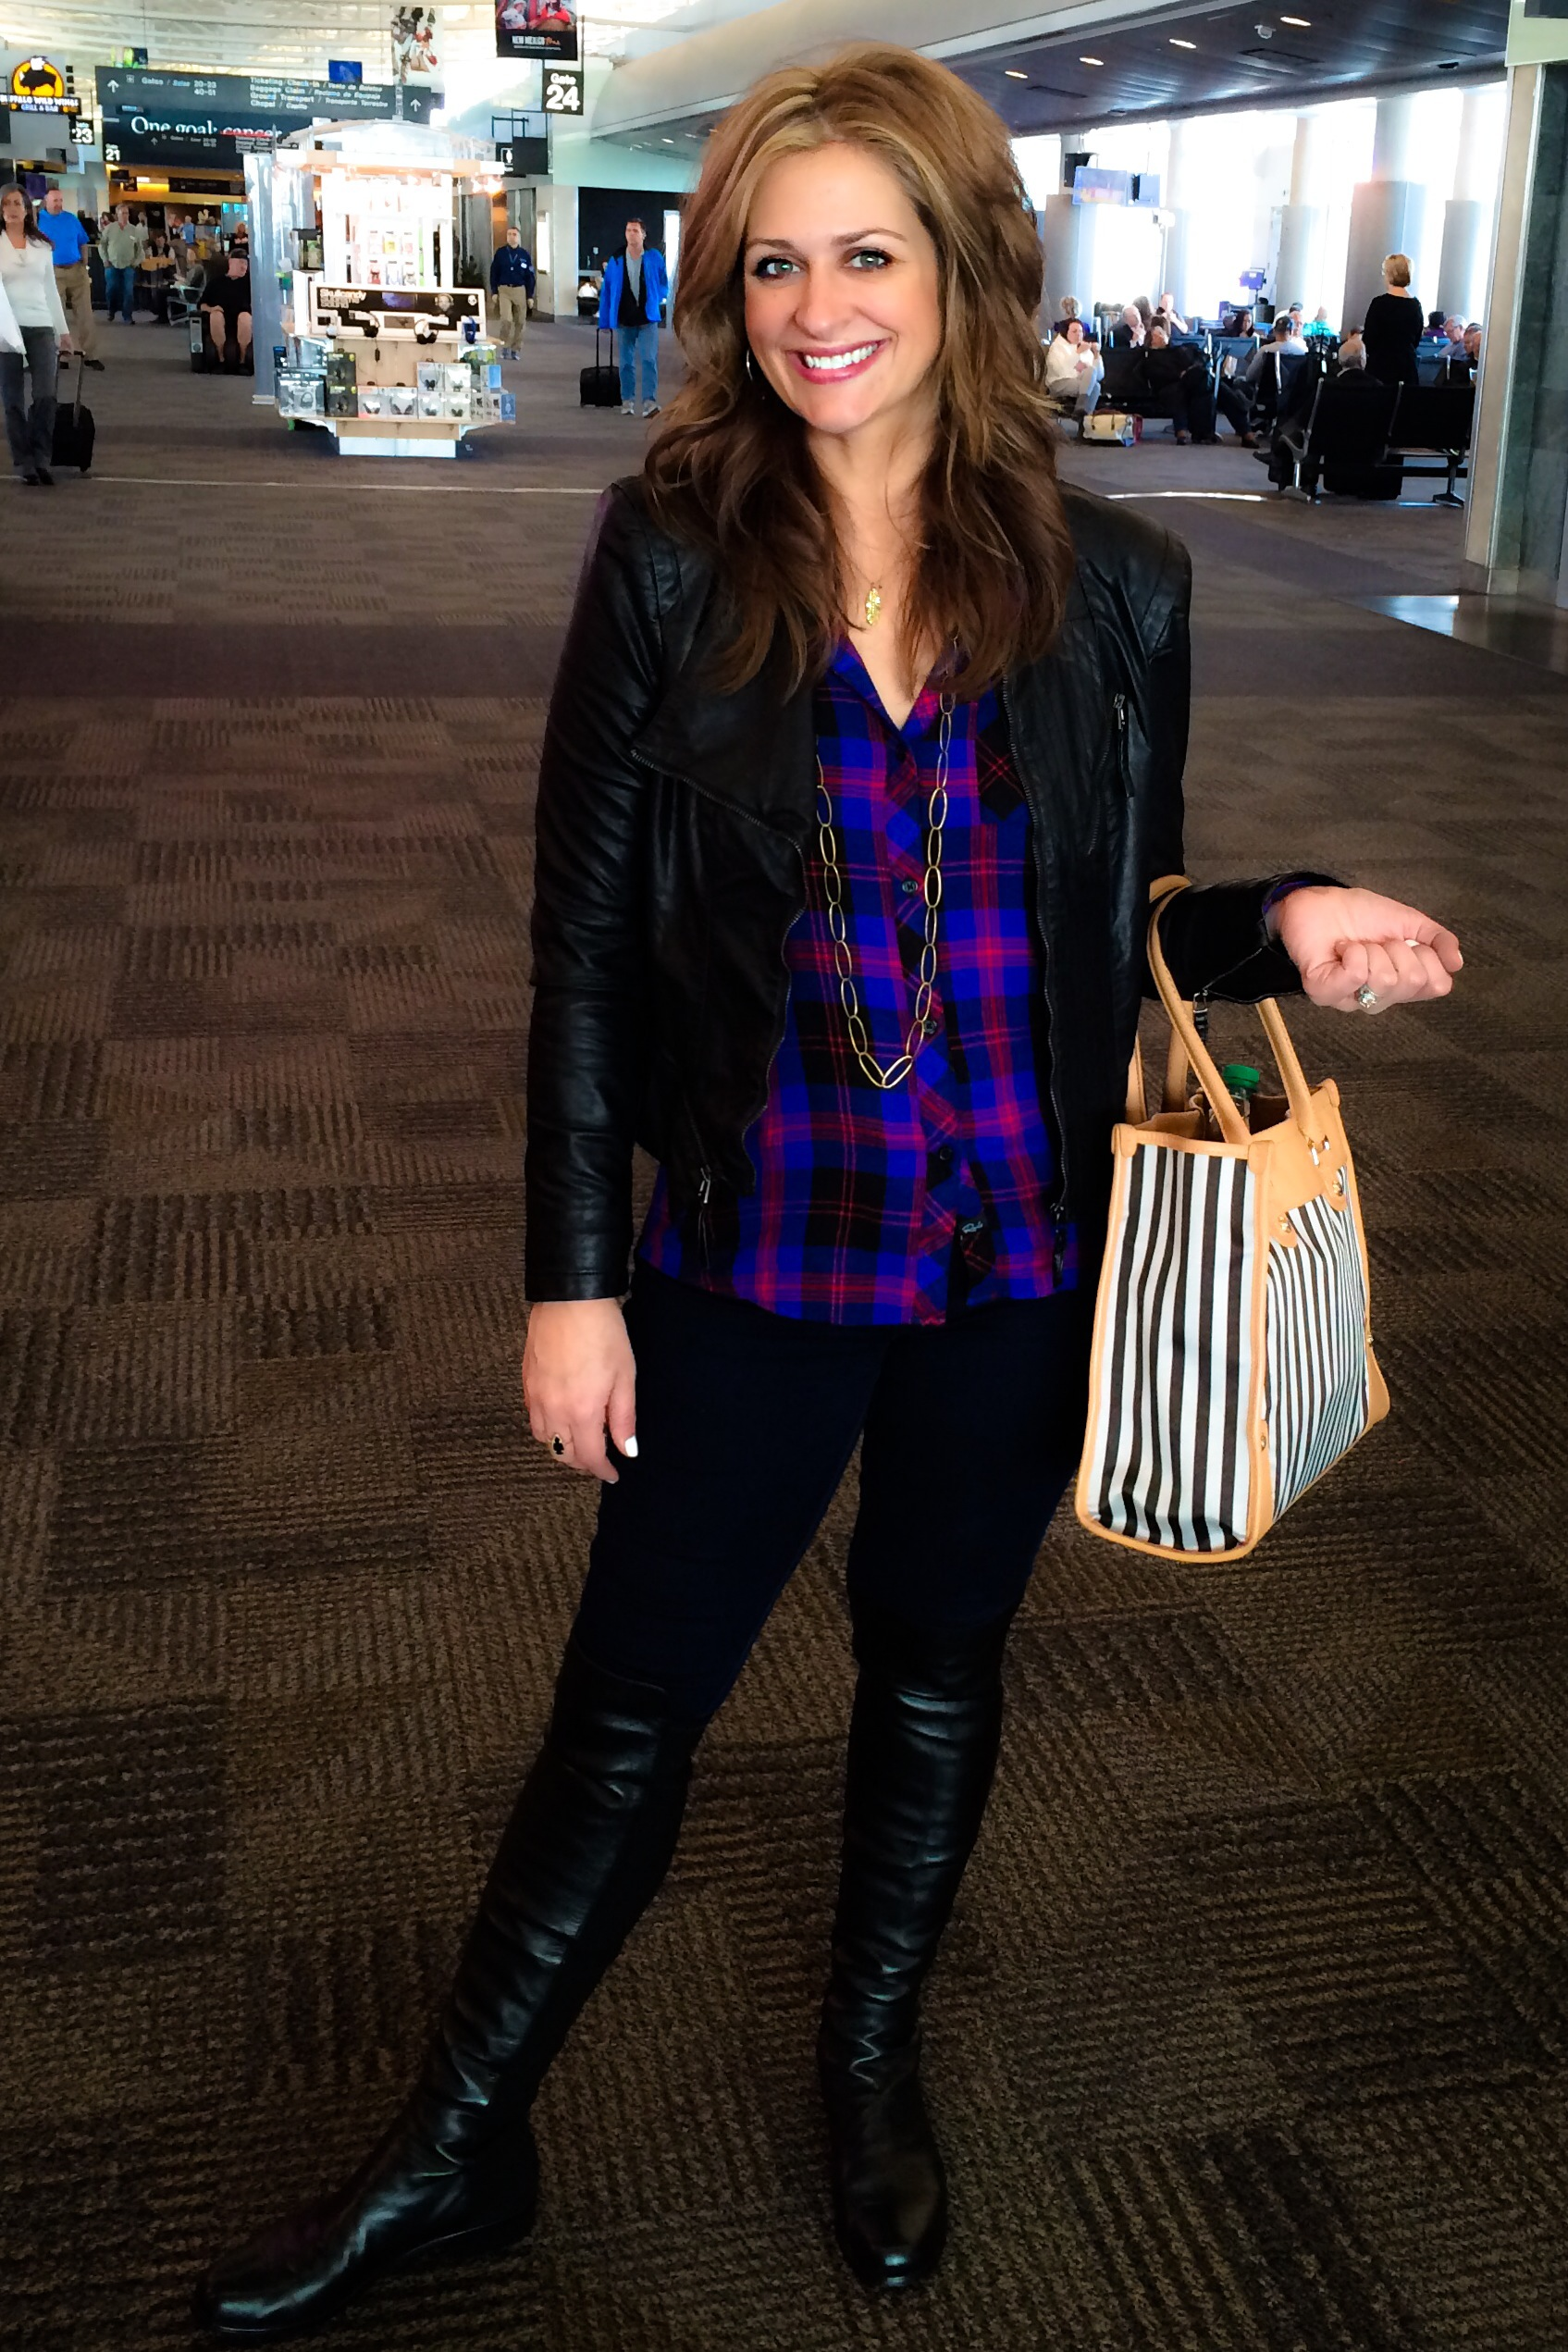 Traveling day. Leather jacket, tote bag, and comfortable yet cute boots. Love plaid for a punch of color.